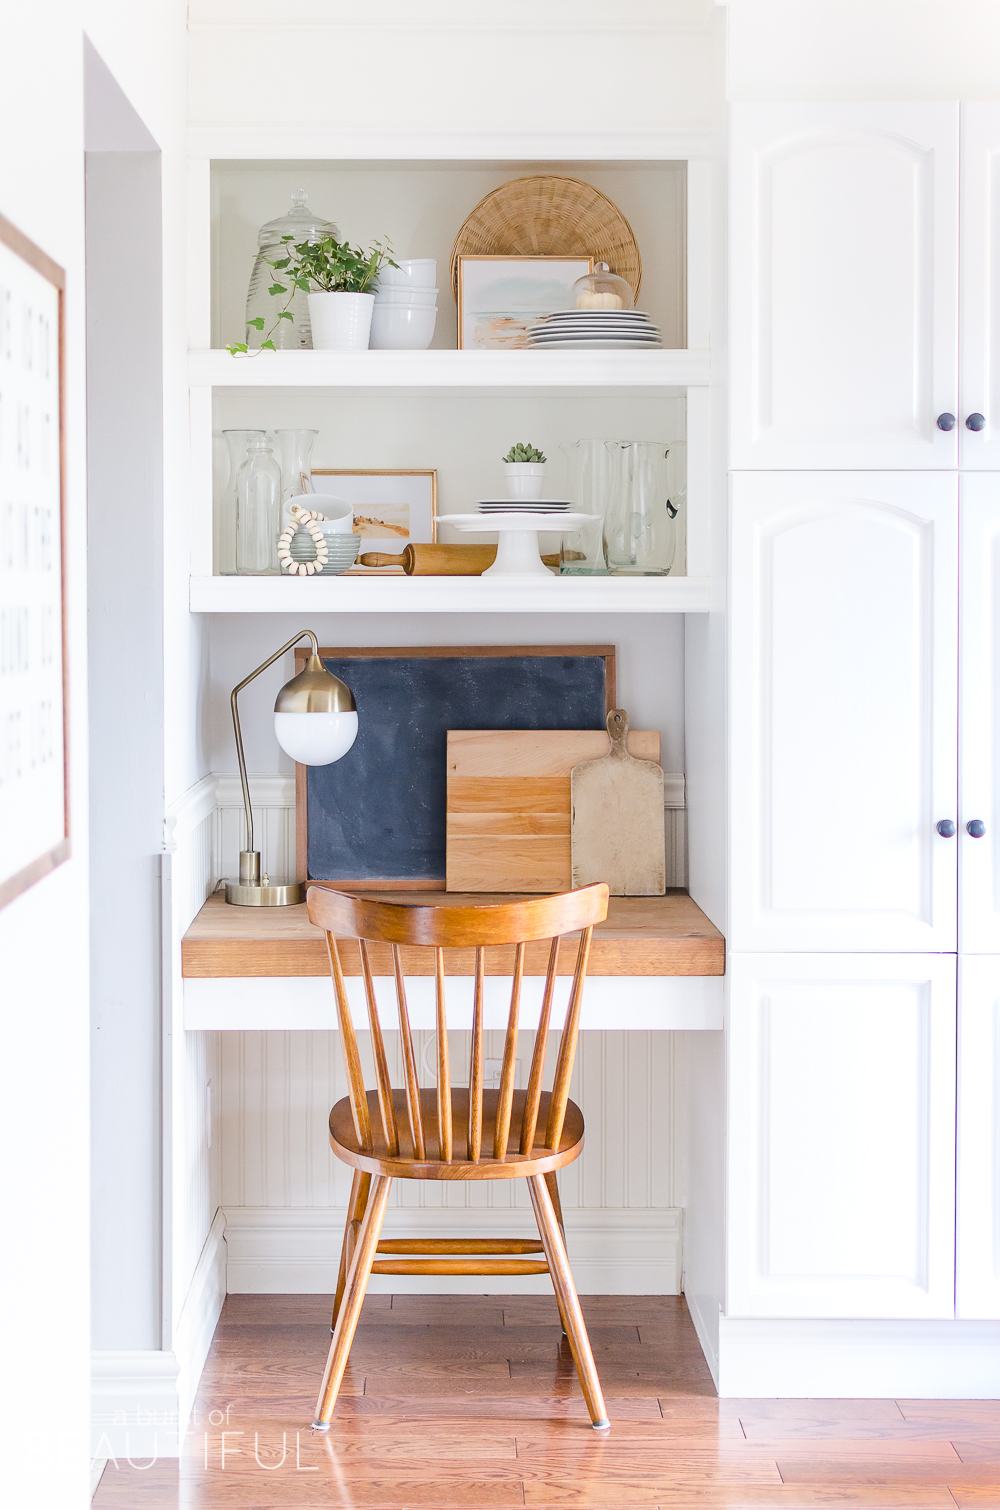 Take a tour of this modern farmhouse kitchen and mudroom featuring subtle fall touches.